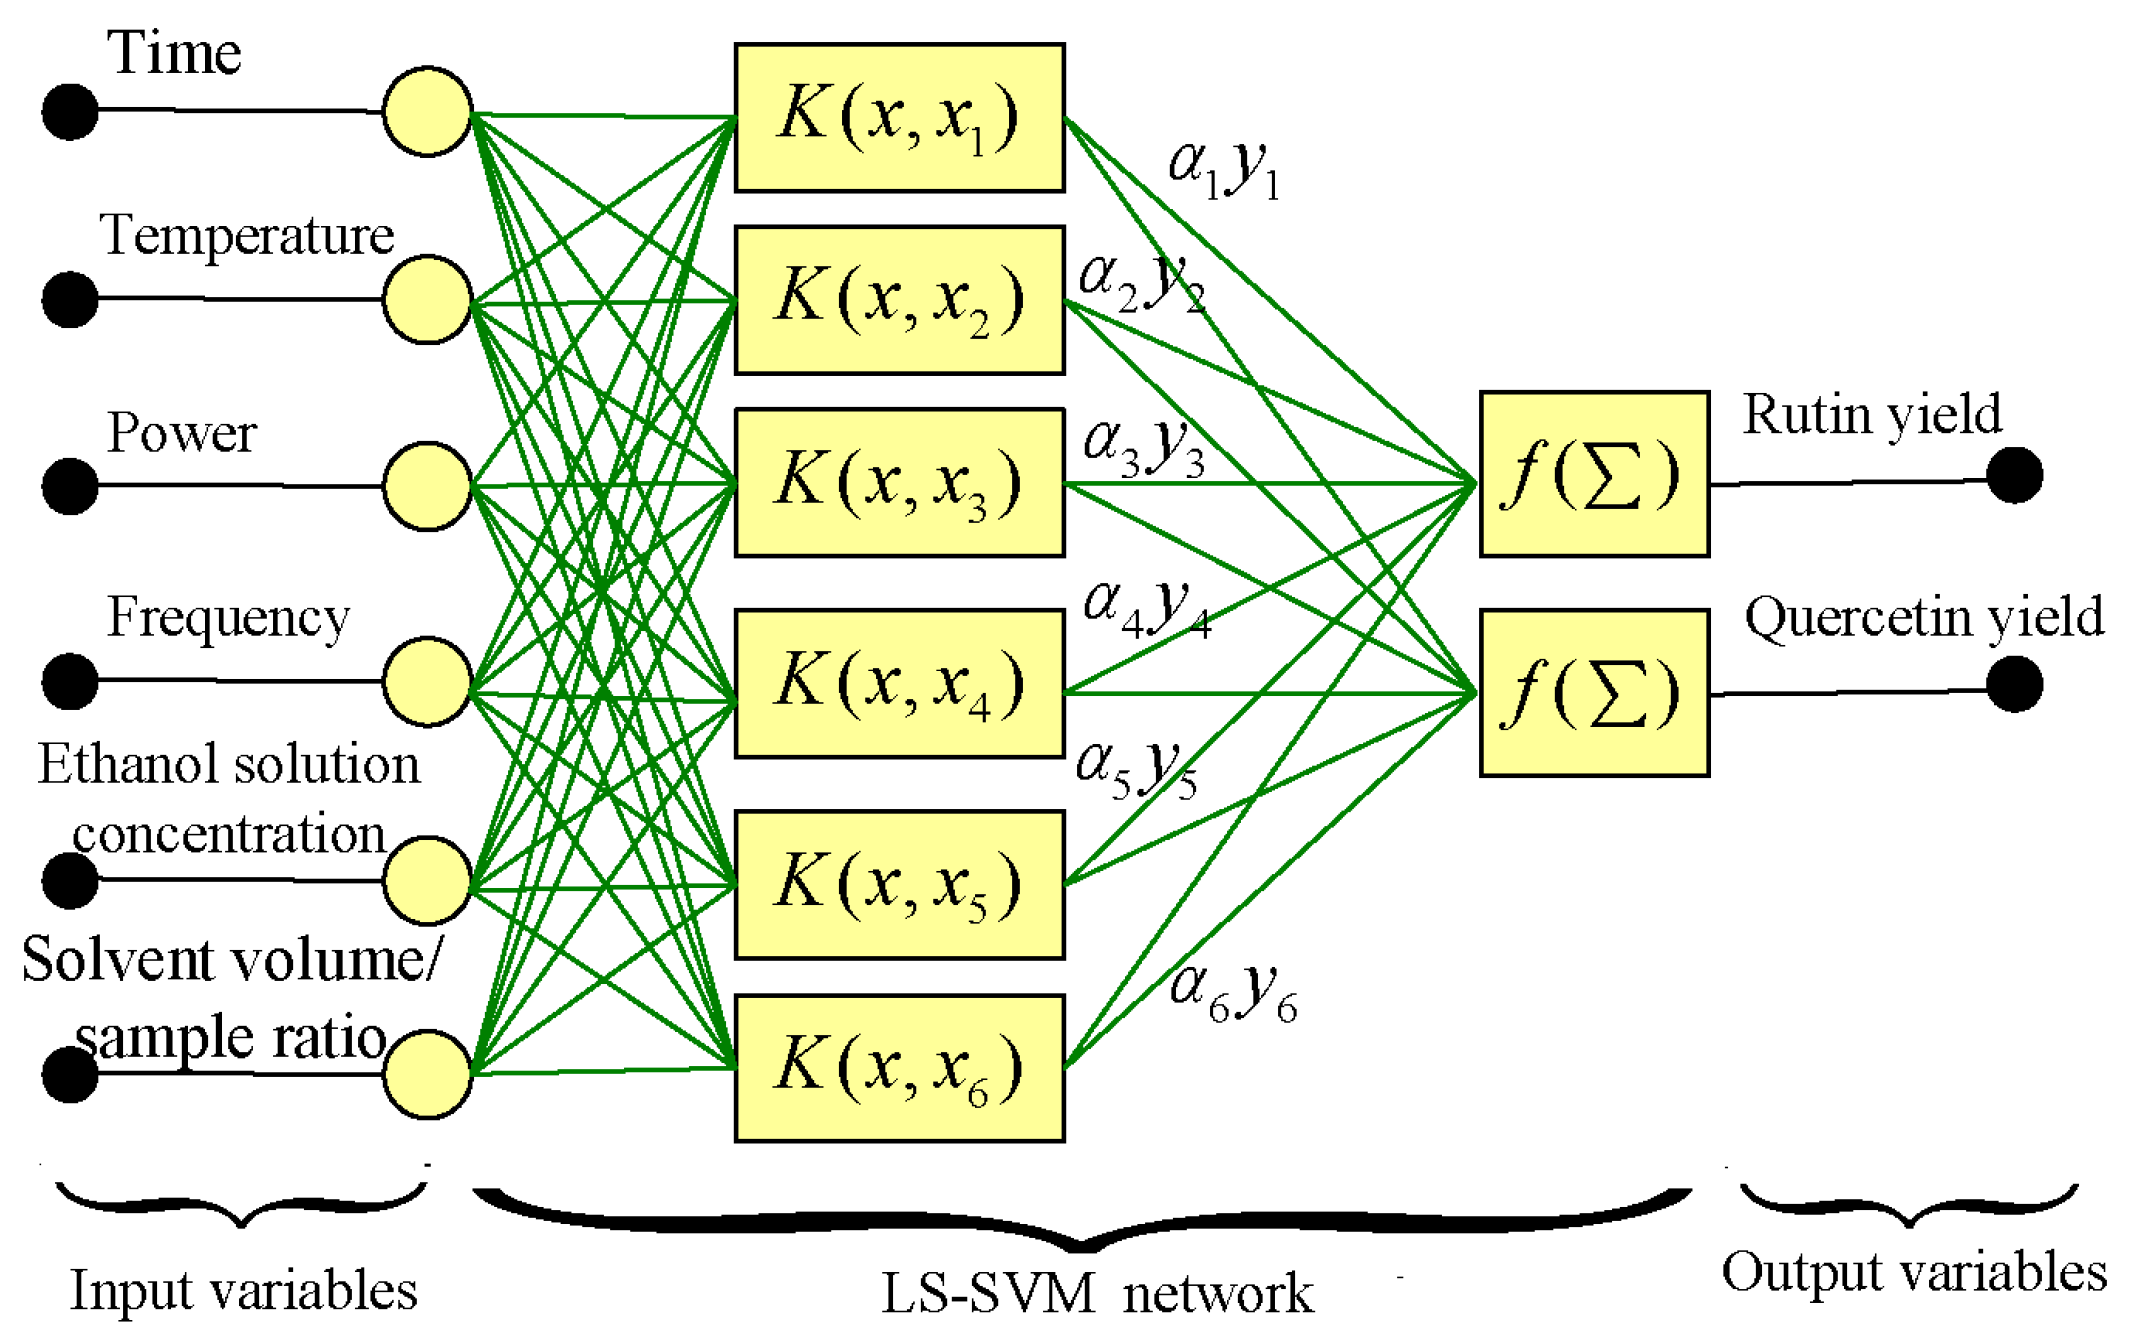 support vector machine based model About support vector machines support vector machines (svm) is a powerful, state-of-the-art algorithm with strong theoretical foundations based on the vapnik-chervonenkis theory.